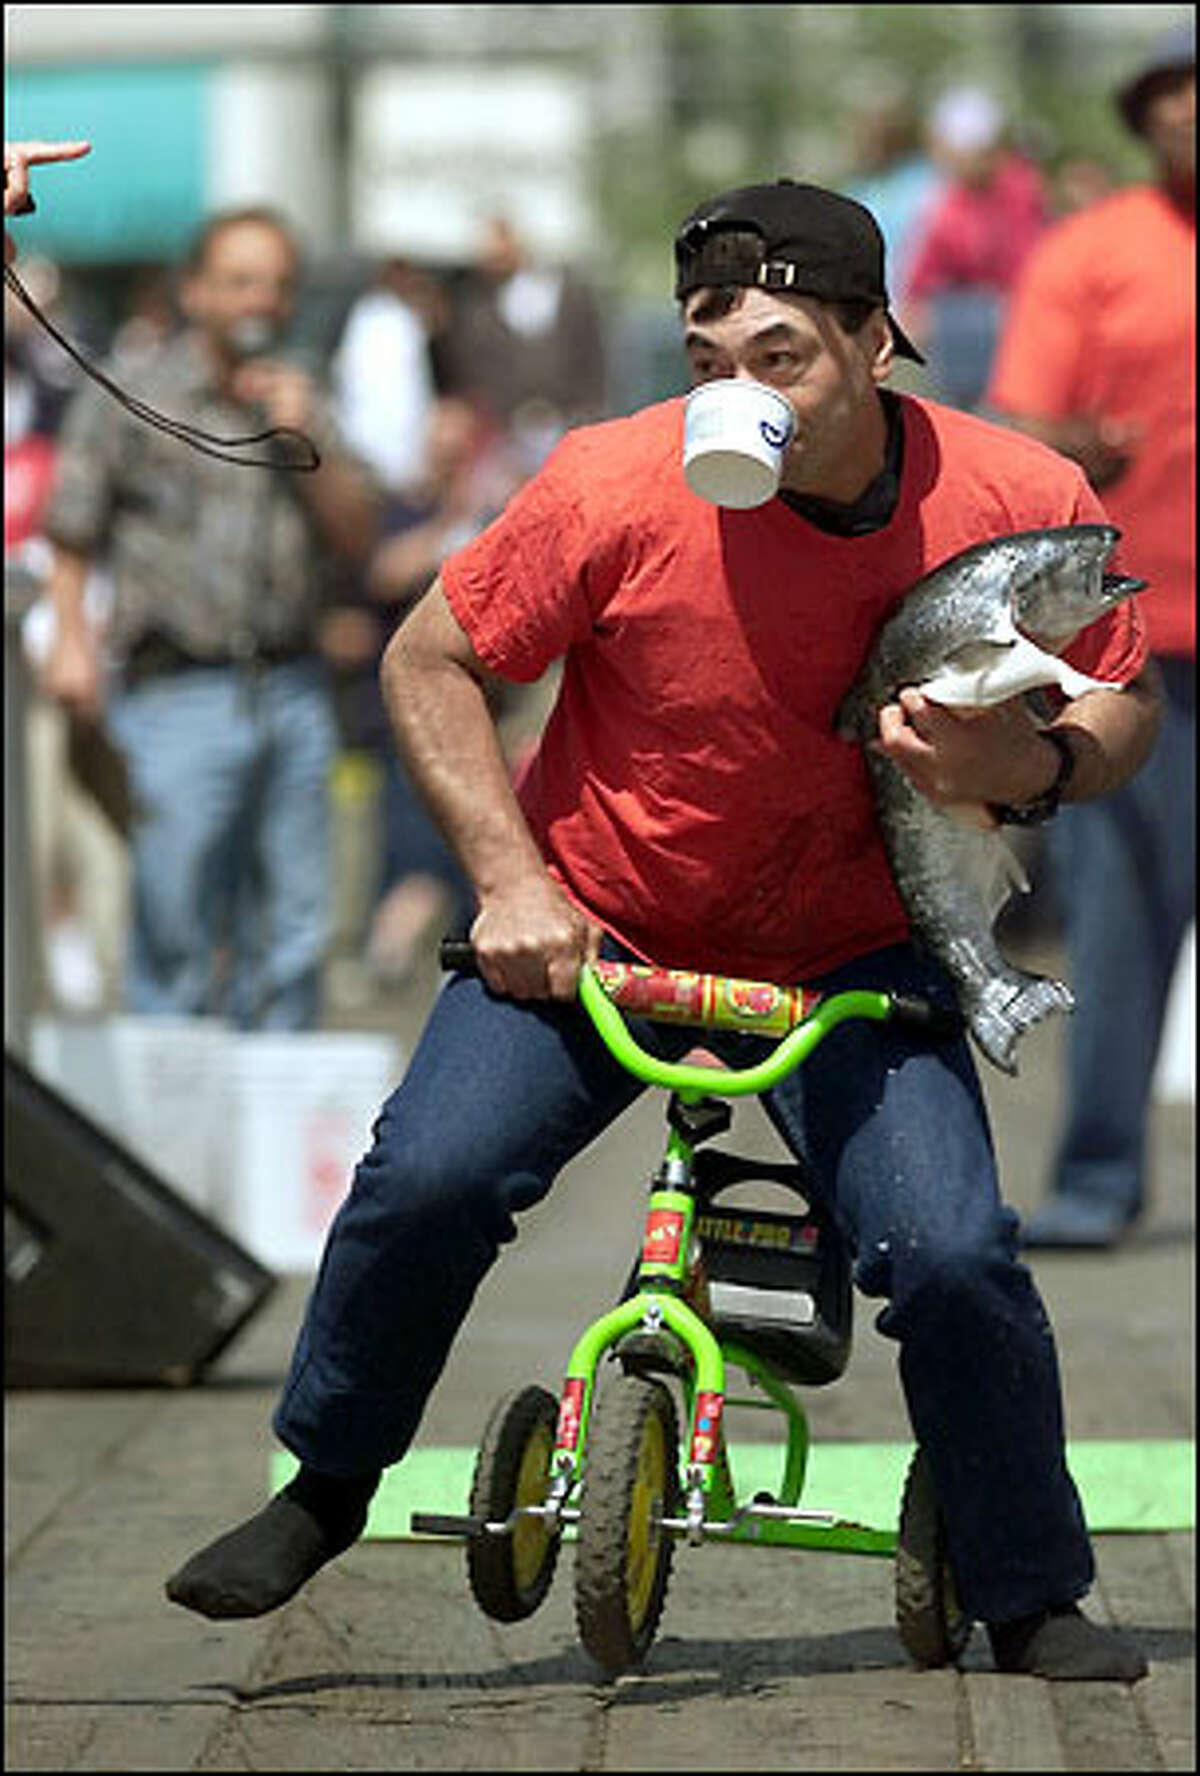 Mike Wolford takes part in an unusual tricycle race yesterday as part of Ivar's Waterfront Triathlon, which is part of the Seattle Maritime Festival. A greased salmon relay and oyster basketball were the other two events in the triathlon. The festival on Seattle's waterfront will conclude tomorrow with tugboat races beginning at 1 p.m.